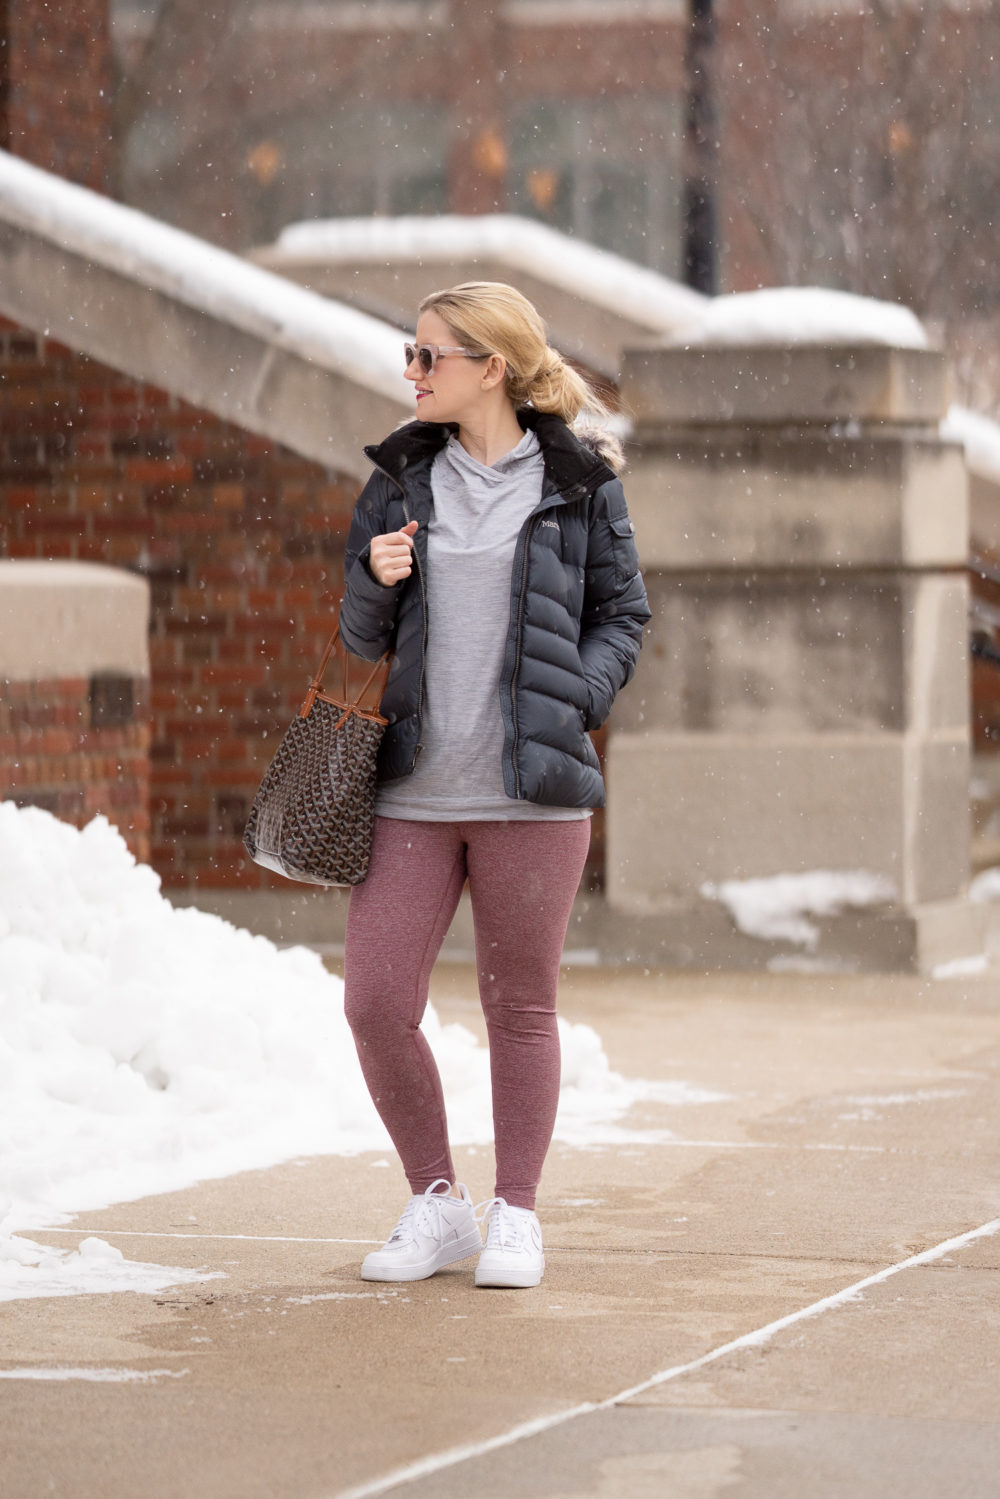 Petite Fashion Blog | Amazon Winter Workout Essentials | Core 10 Leggings | Marmot Women's Ithaca Down Puffer Jacket | Winter Workout Tips